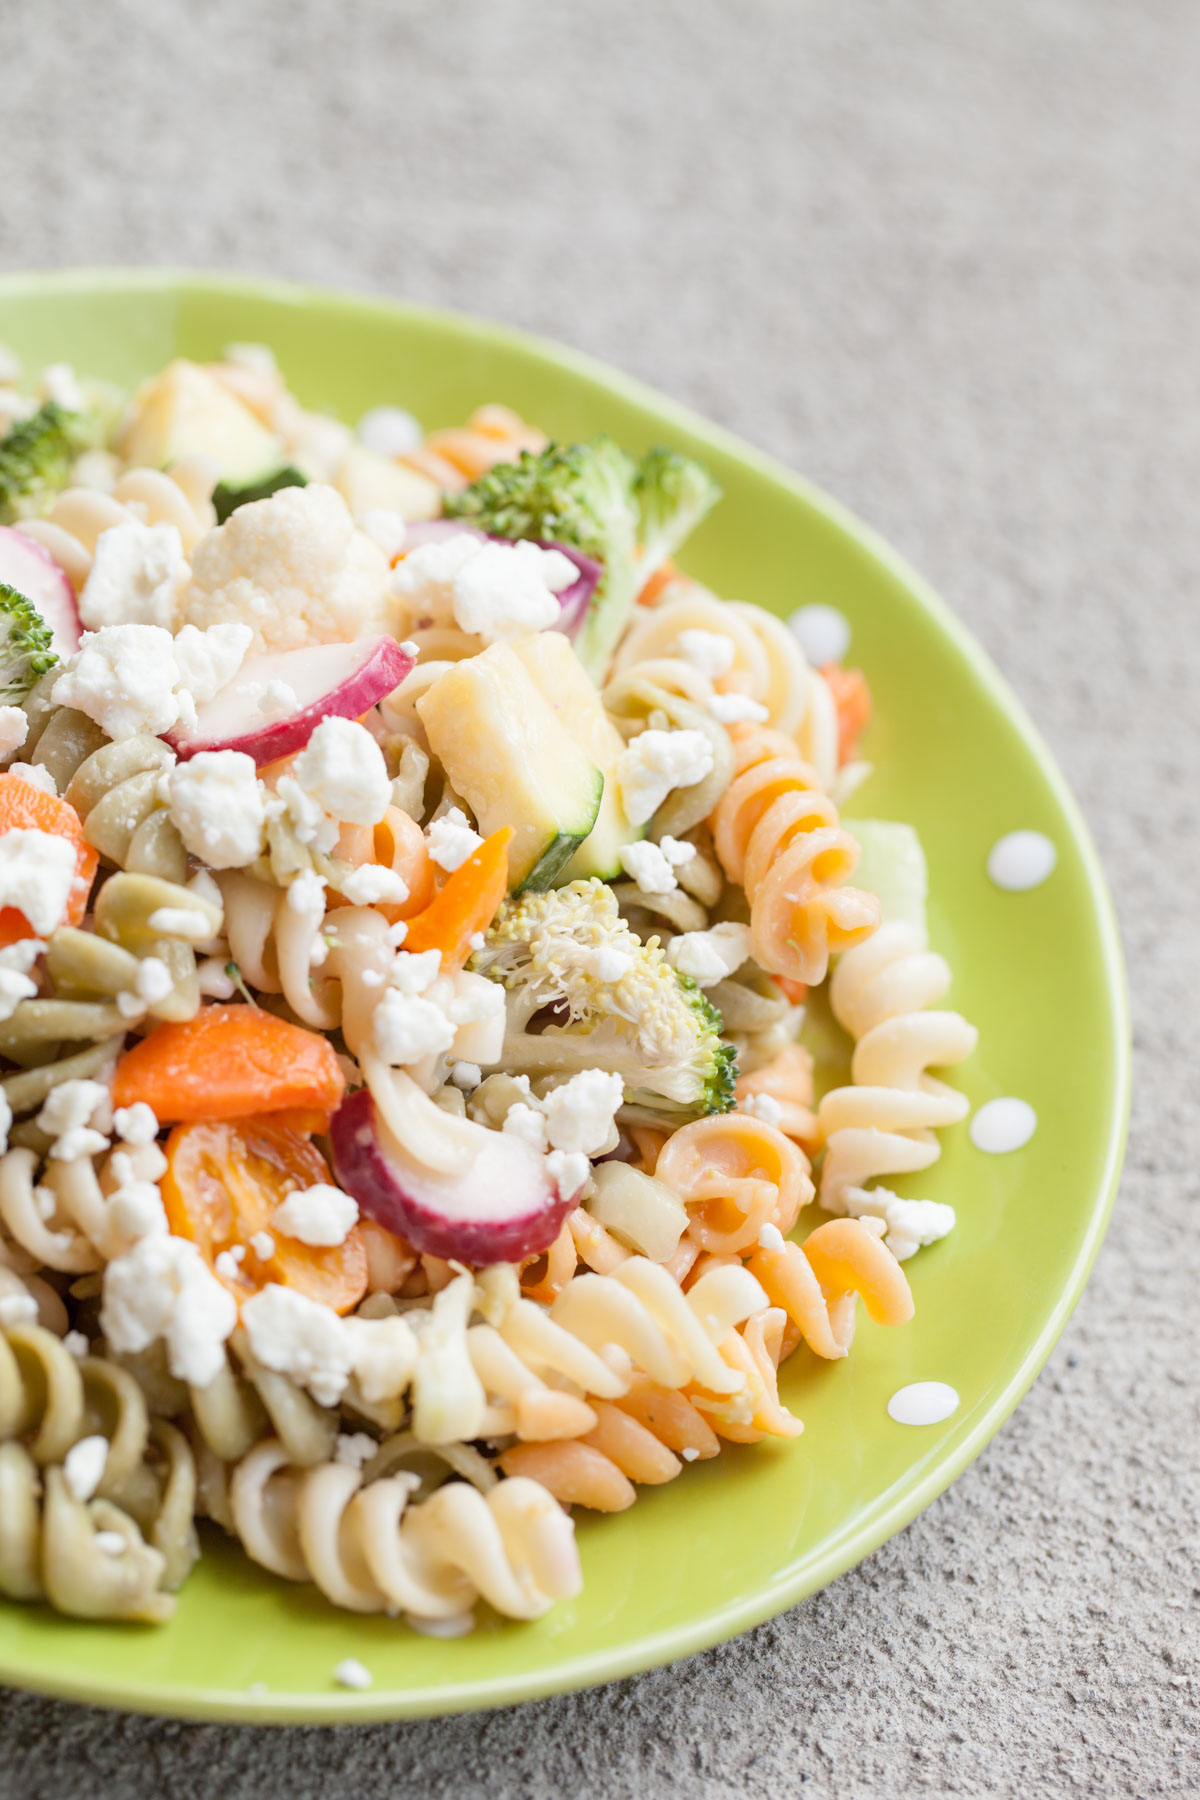 Quick and Easy Lunches - Marinated Vegetable Pasta Salad with Feta Cheese #homebakedjoy #vezzaniphotography